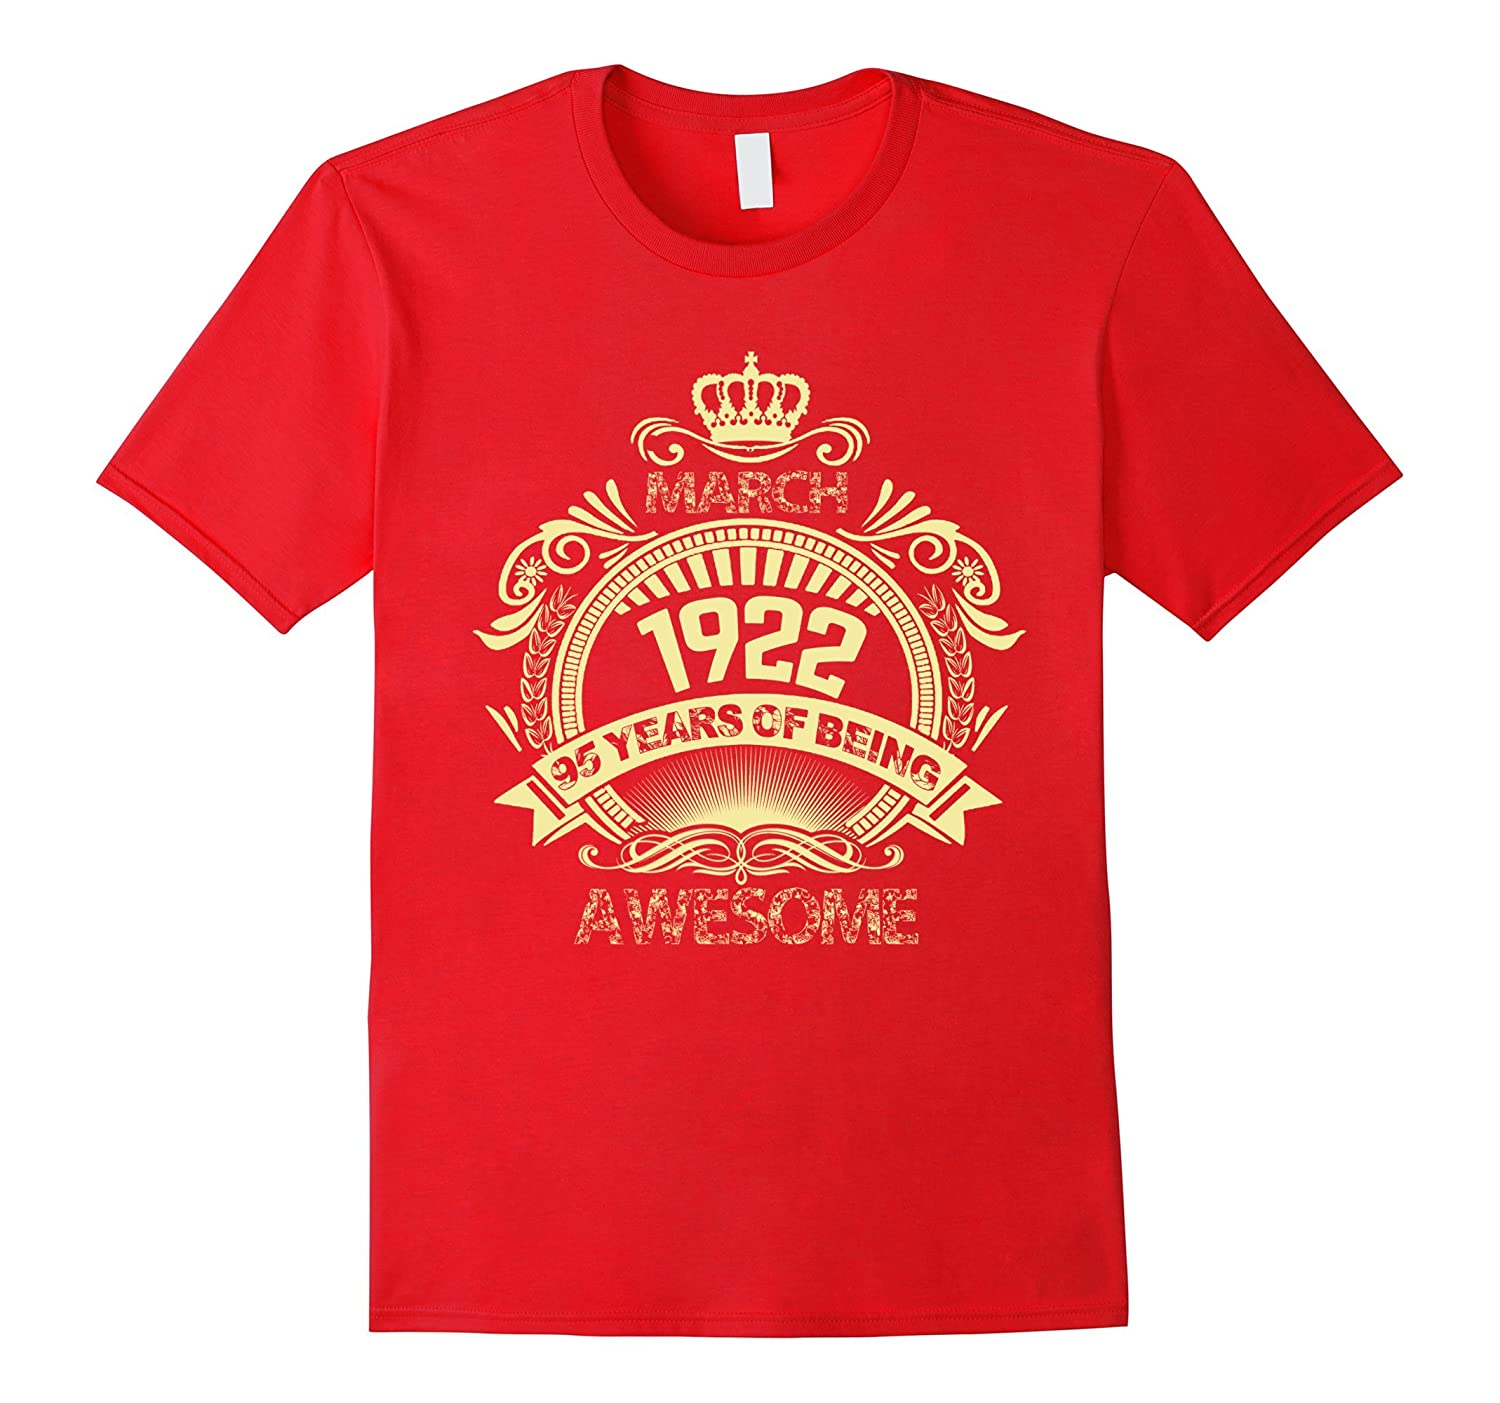 March 1922 95 years of being awesome T-shirt-Vaci